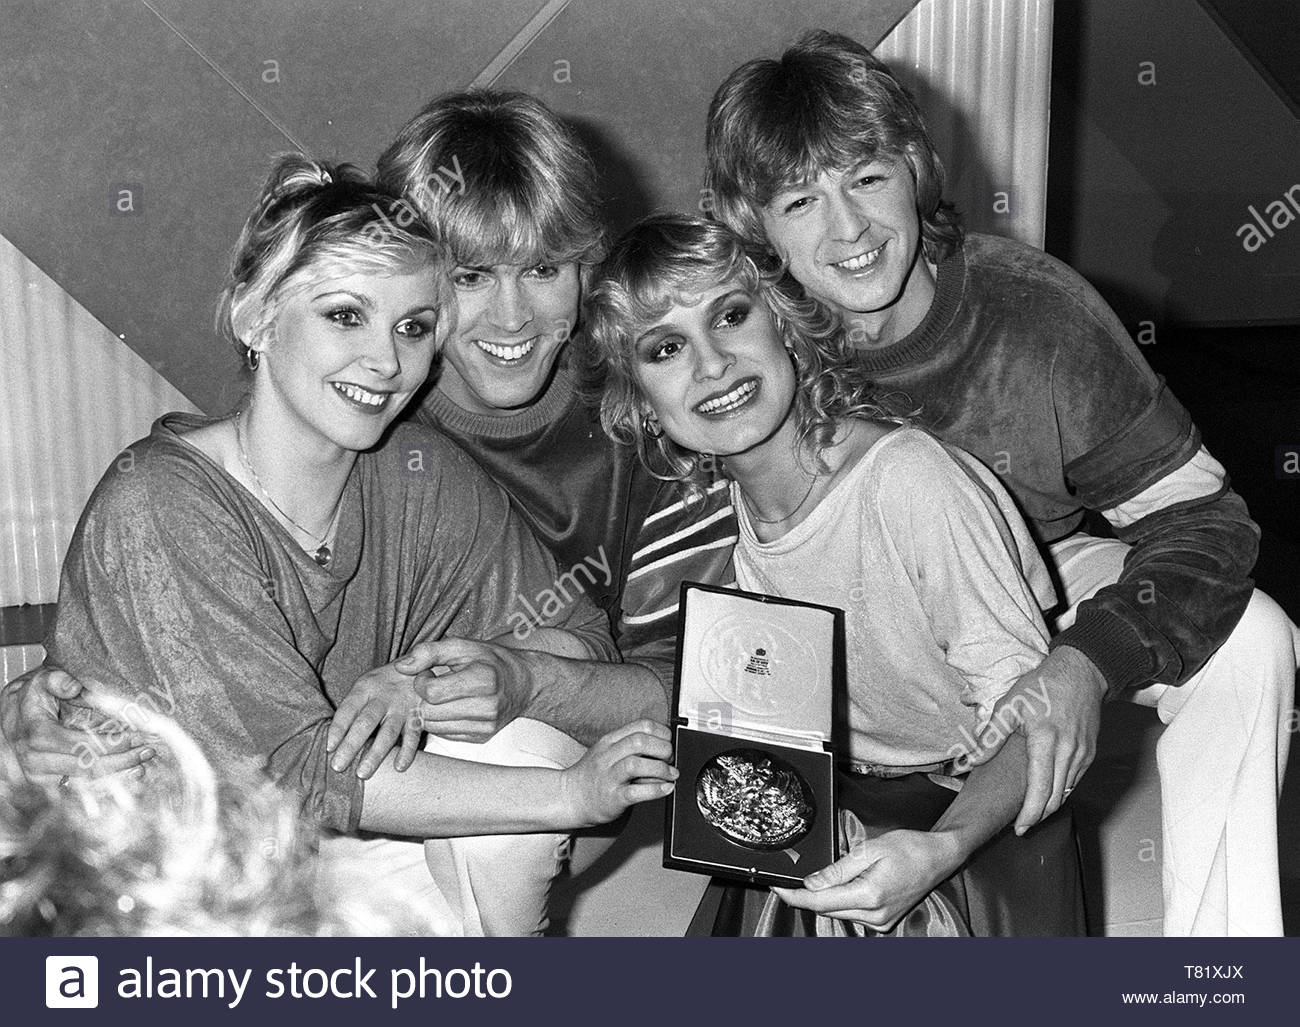 File photo dated 11/03/81 of Bucks Fizz, who won the Eurovision Song Contest in 1981. From the heady heights of the days of Bucks Fizz and Katrina And The Waves, to the lows of Daz Sampson and Jemini, the UK has attempted to entertain its European neighbours with some interesting performances over Eurovision's more than 60-year history. - Stock Image